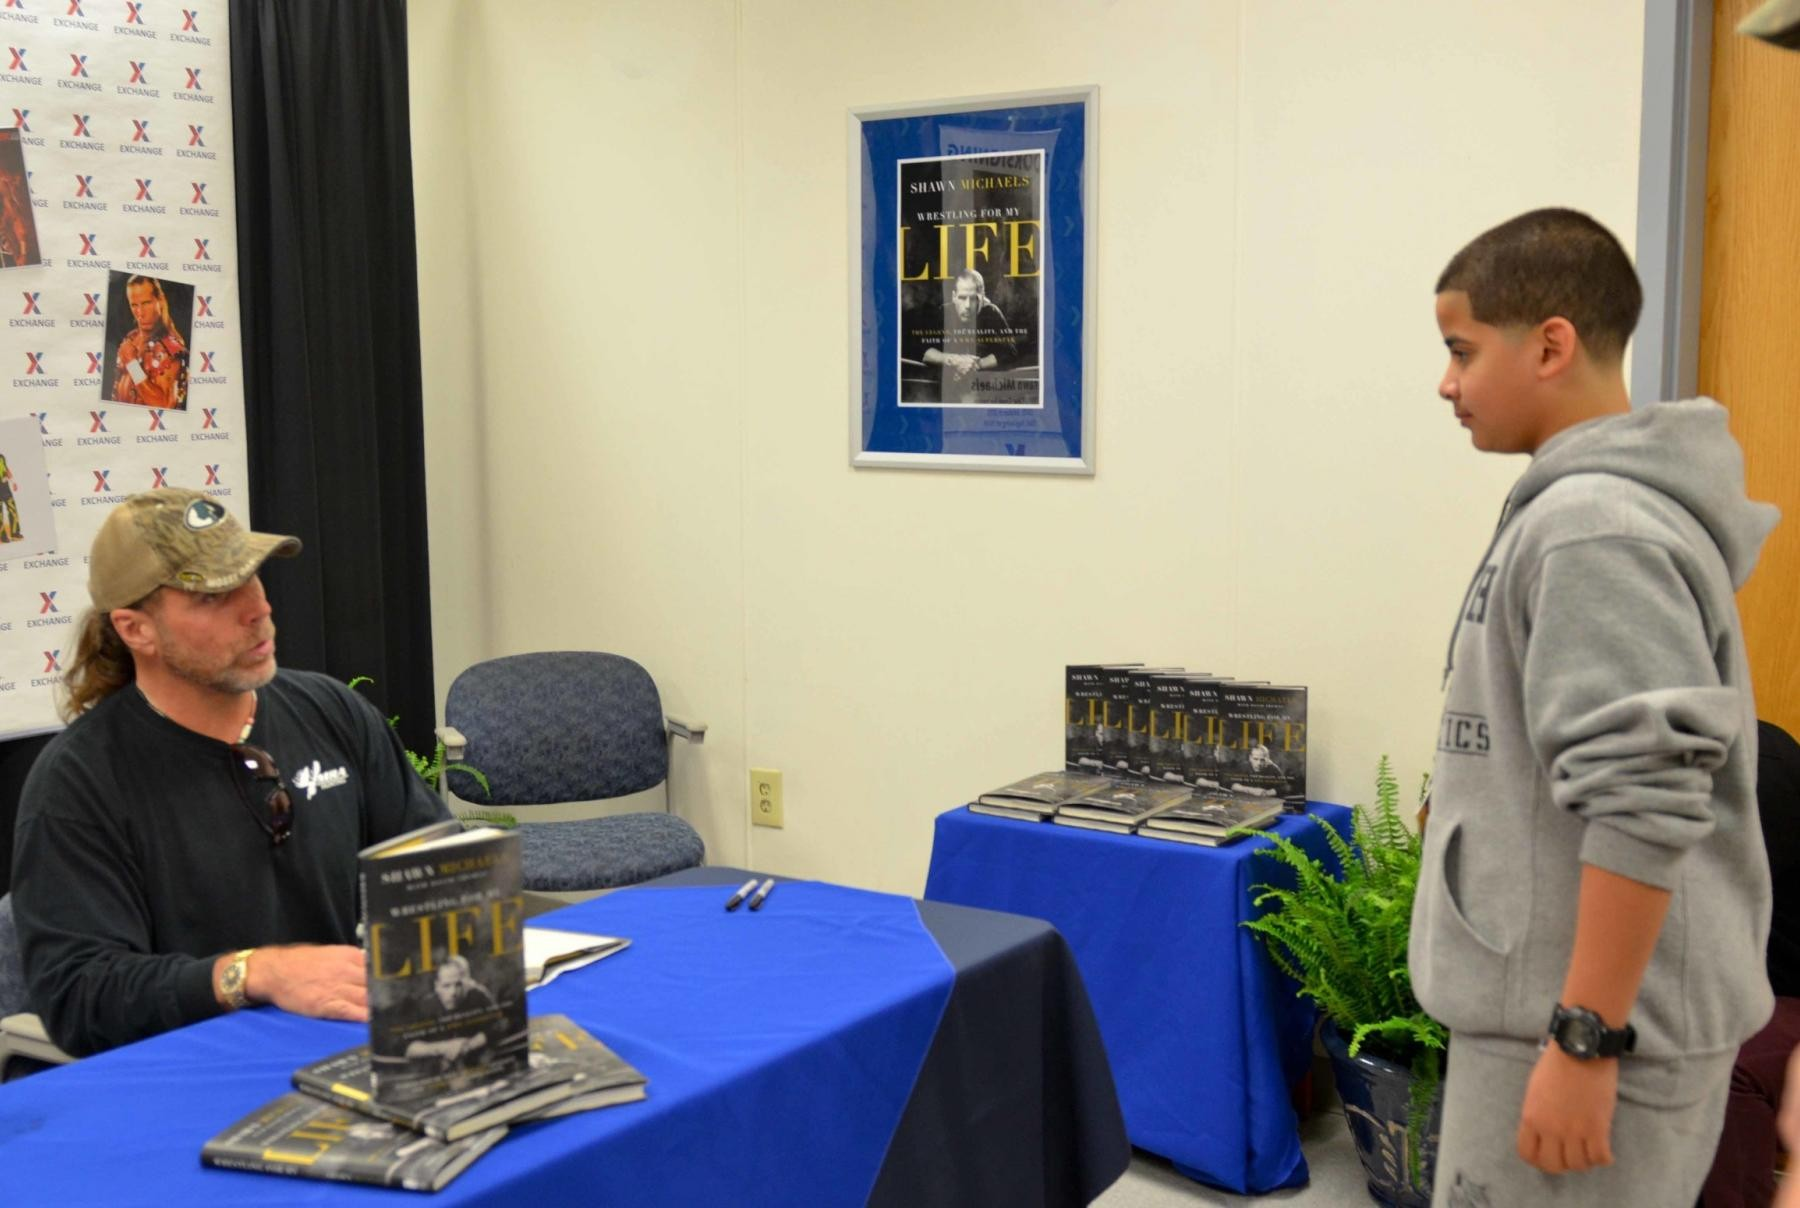 Hall of fame wrestler meets fans for book signing at clear creek px original m4hsunfo